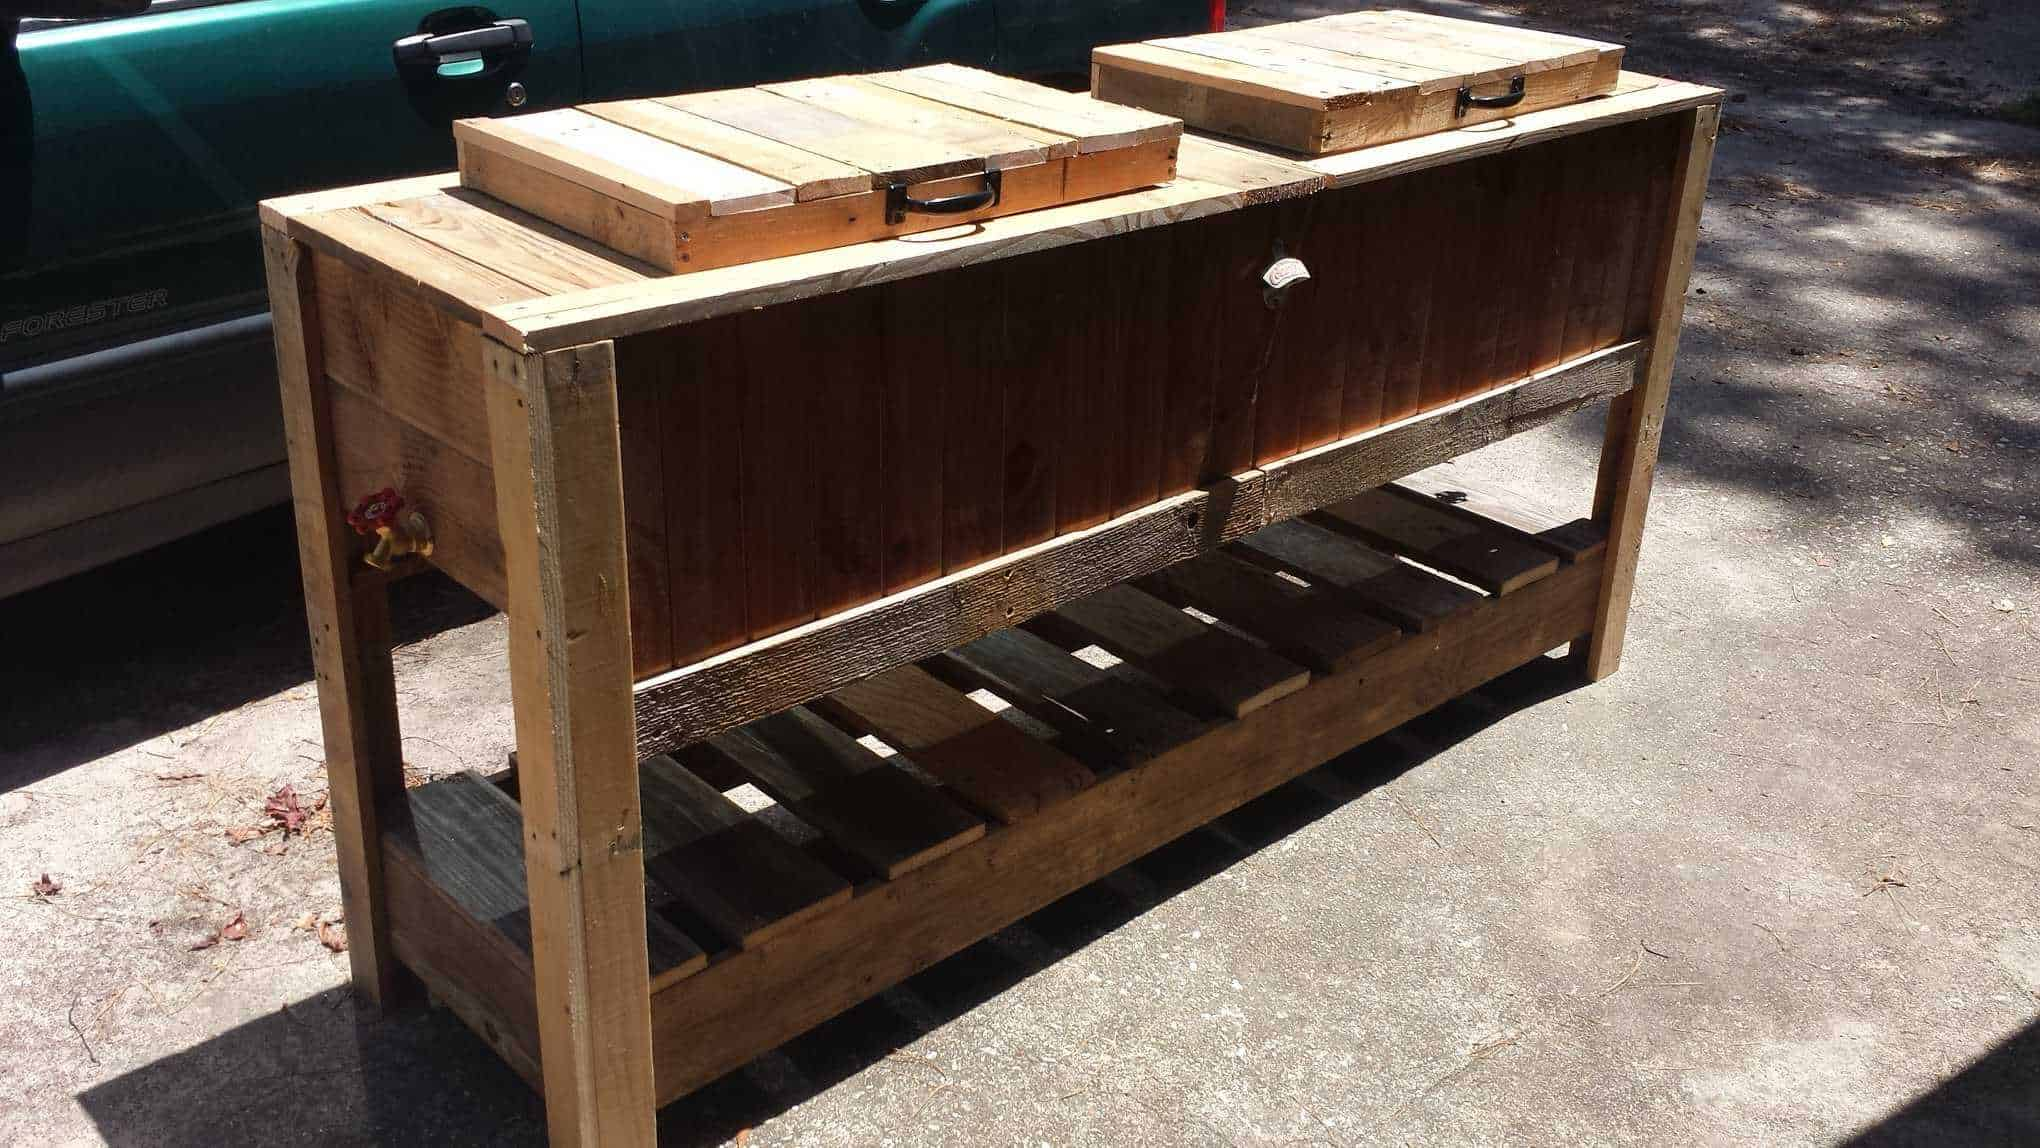 Pallet Cooler Stands • Pallet Ideas • 1001 Pallets